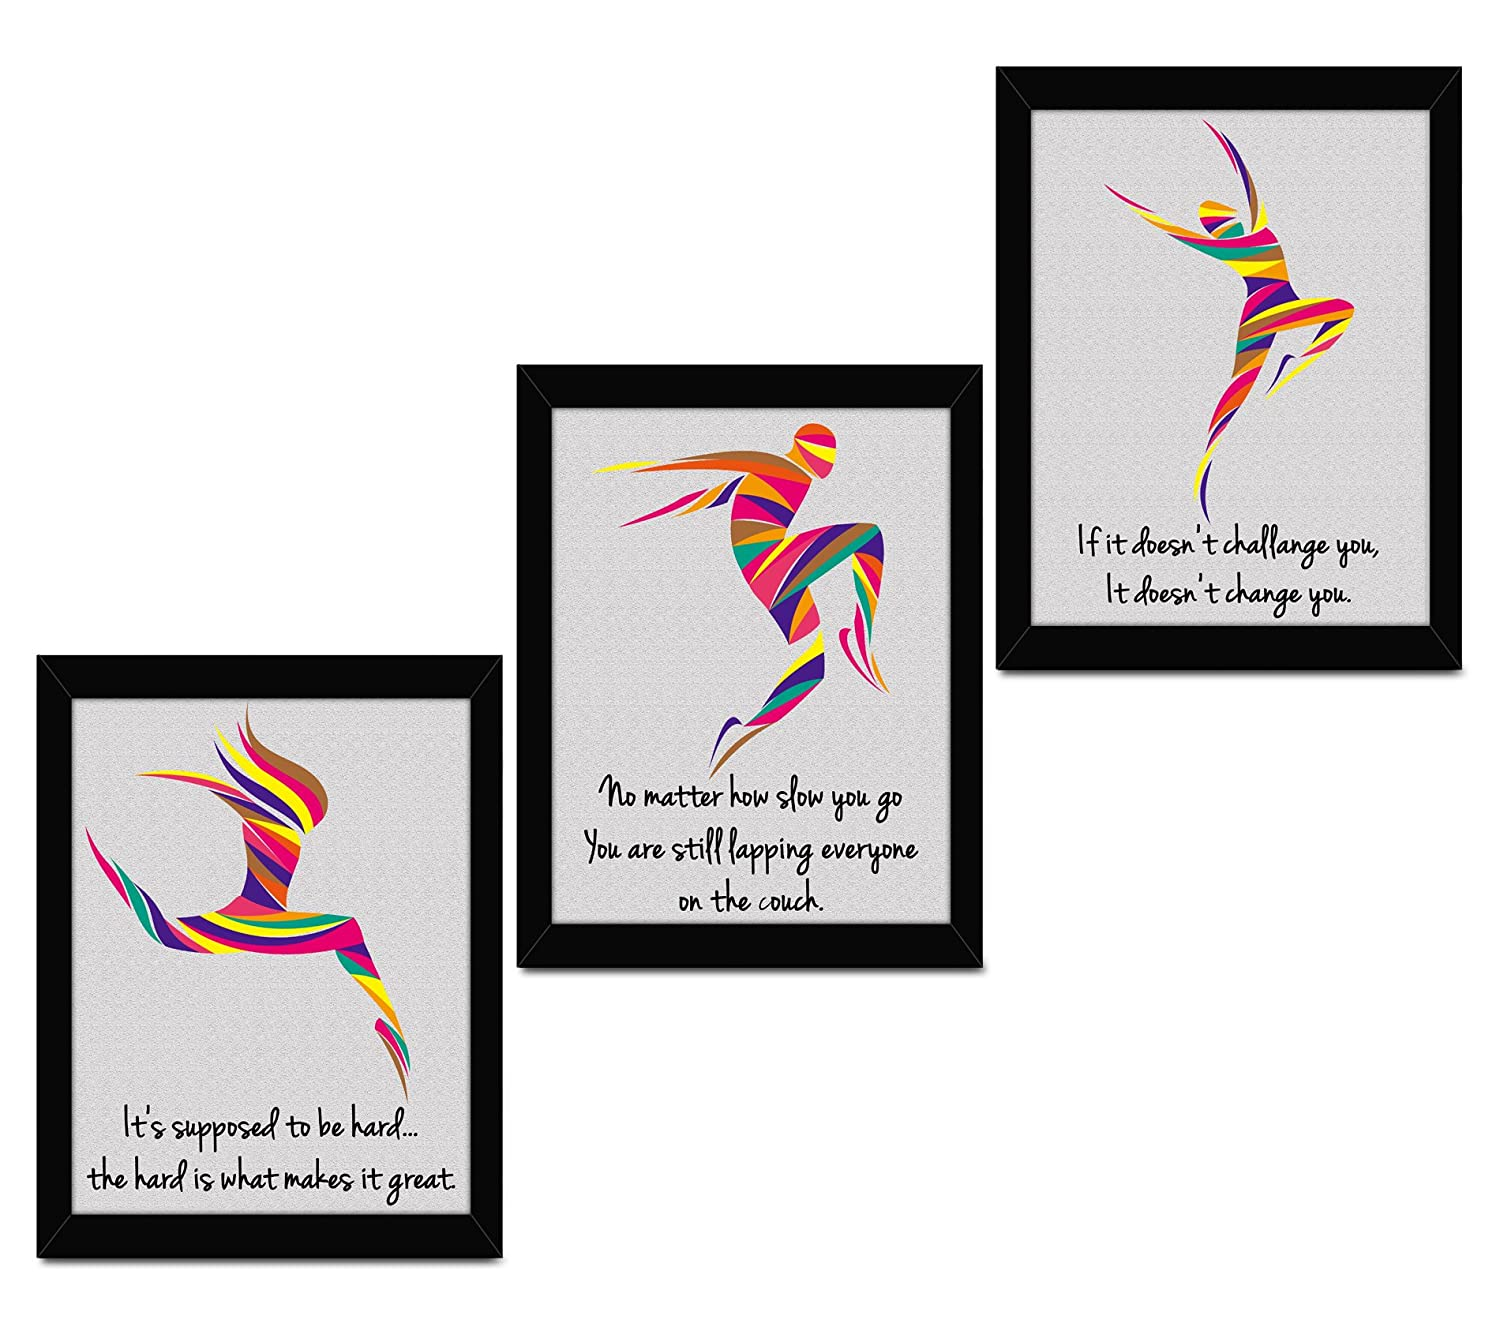 TIED RIBBONS Motivational Posters For Office And Home Decor Framed Quote For Inspiration Set of 3 (13.6 inch X 10.2 inch)